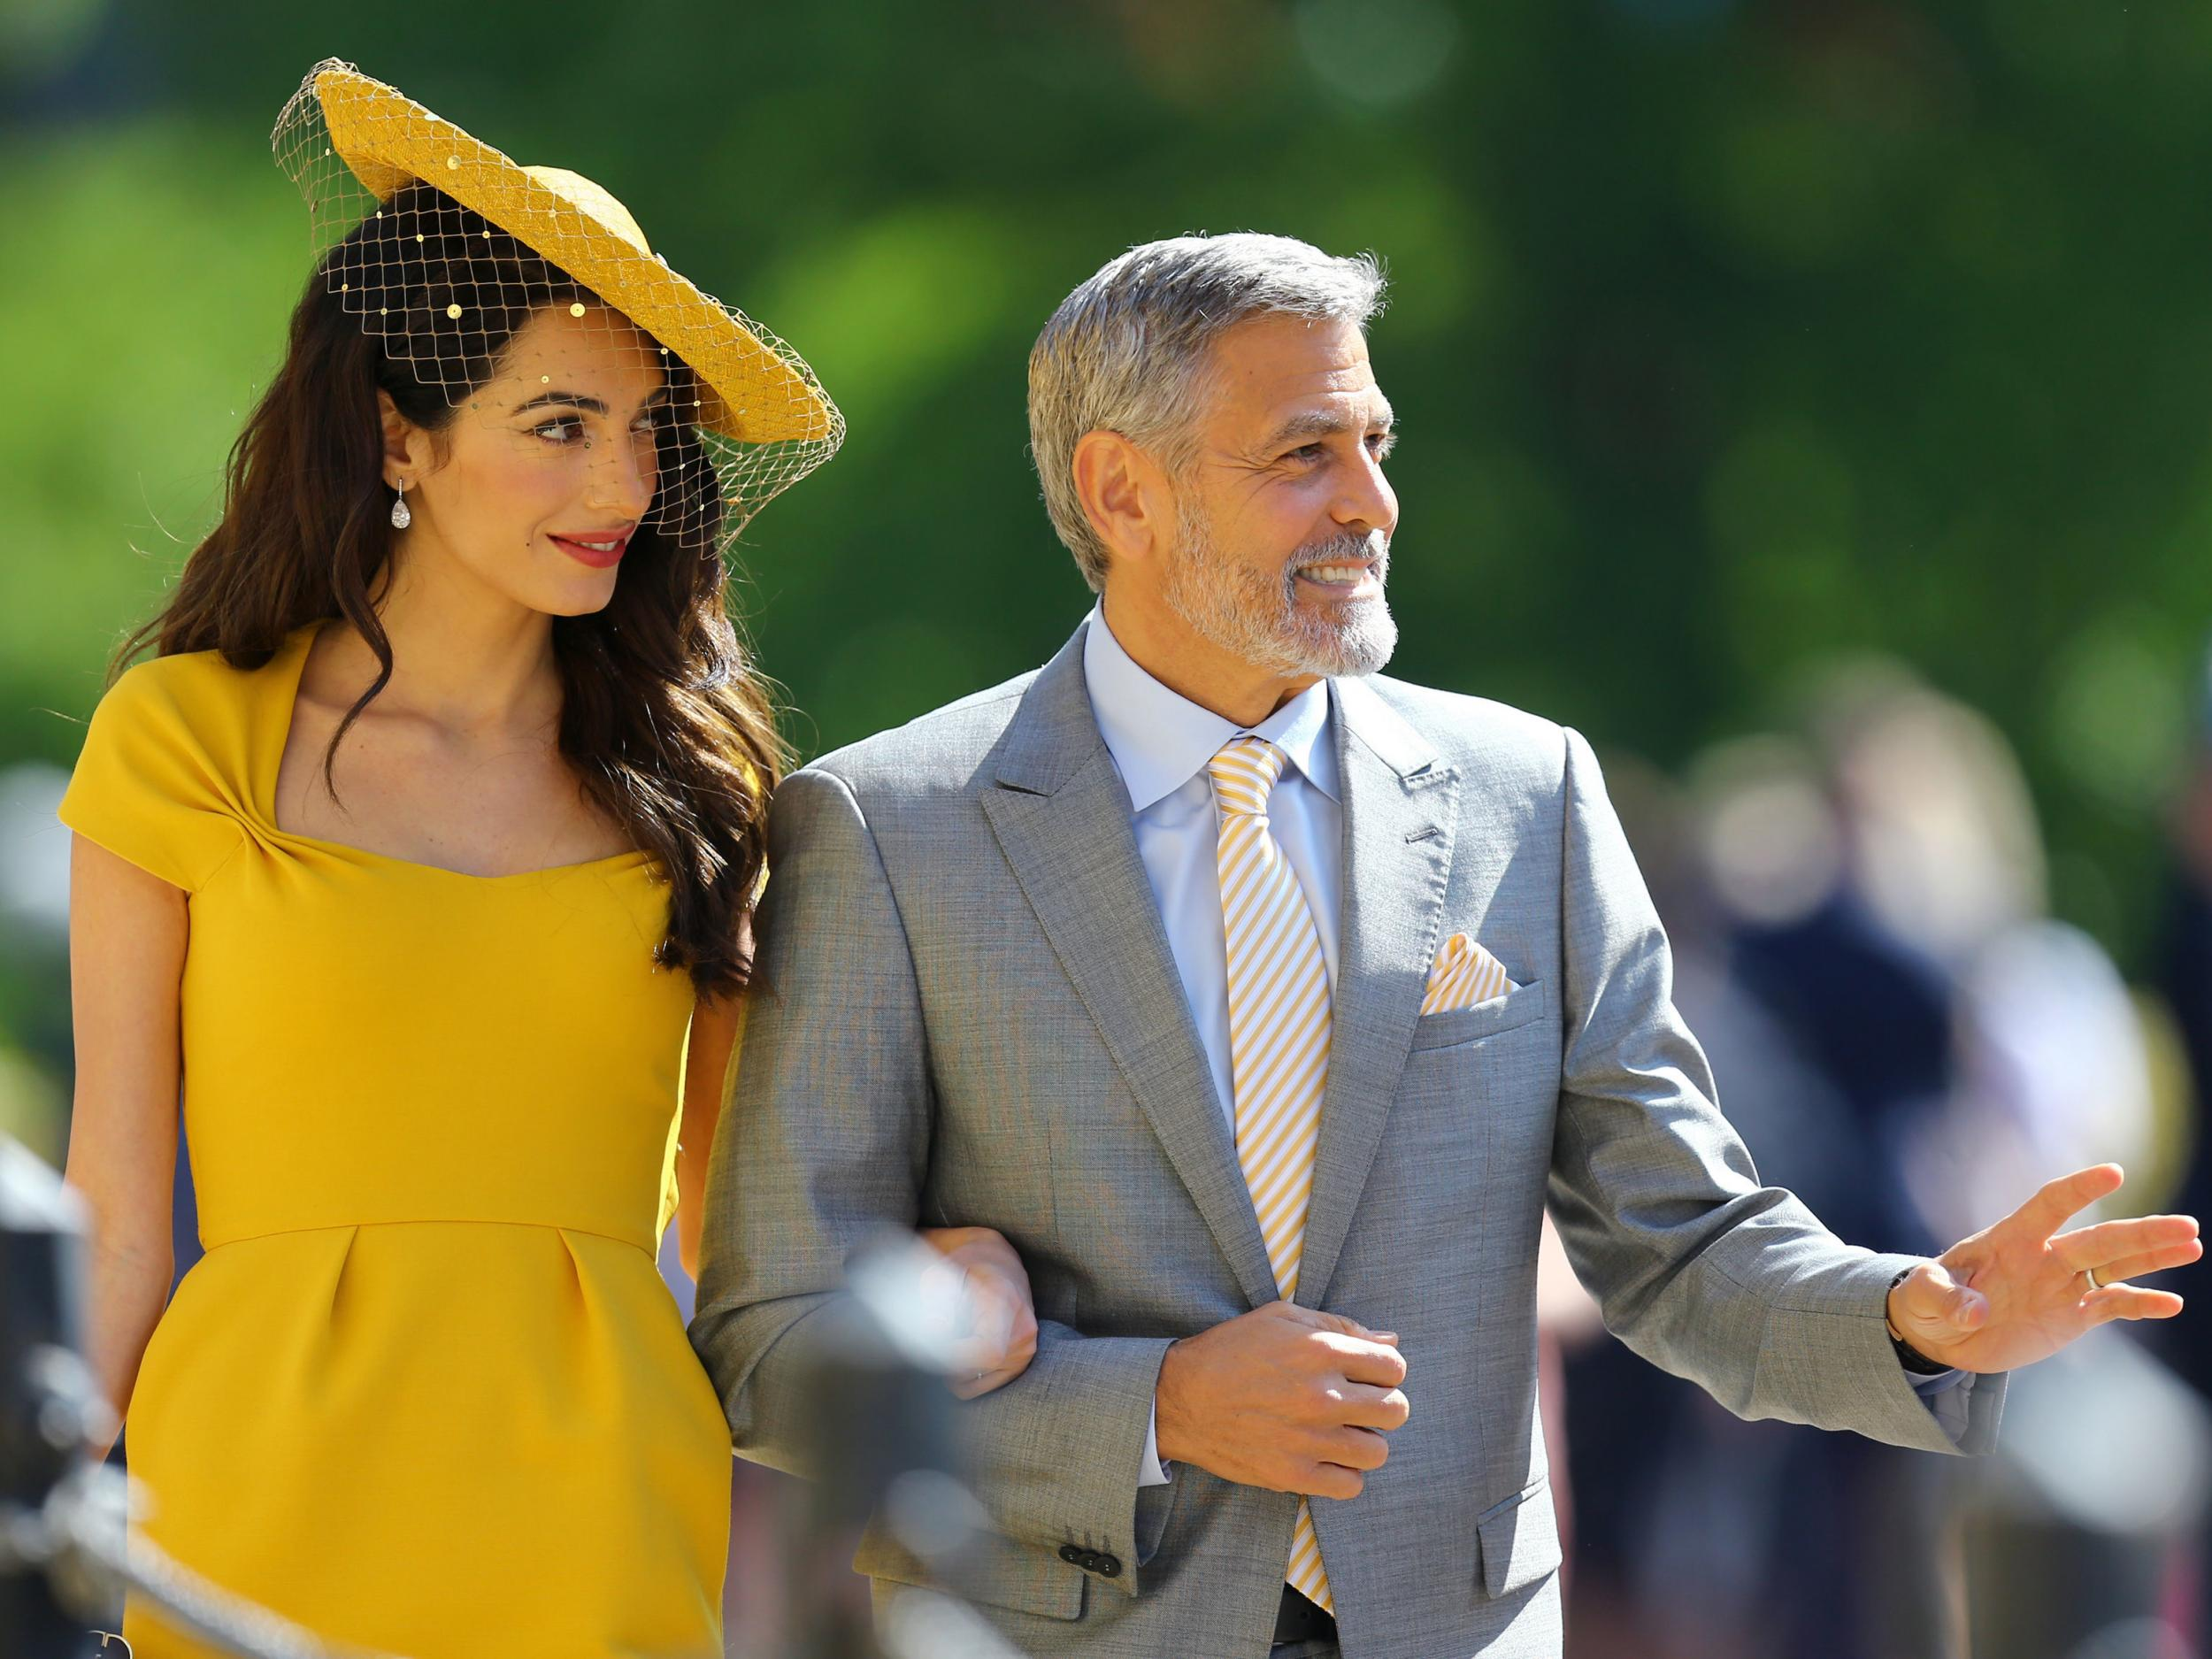 George Clooney reportedly poured shots of his billion-dollar tequila brand at royal wedding after-party